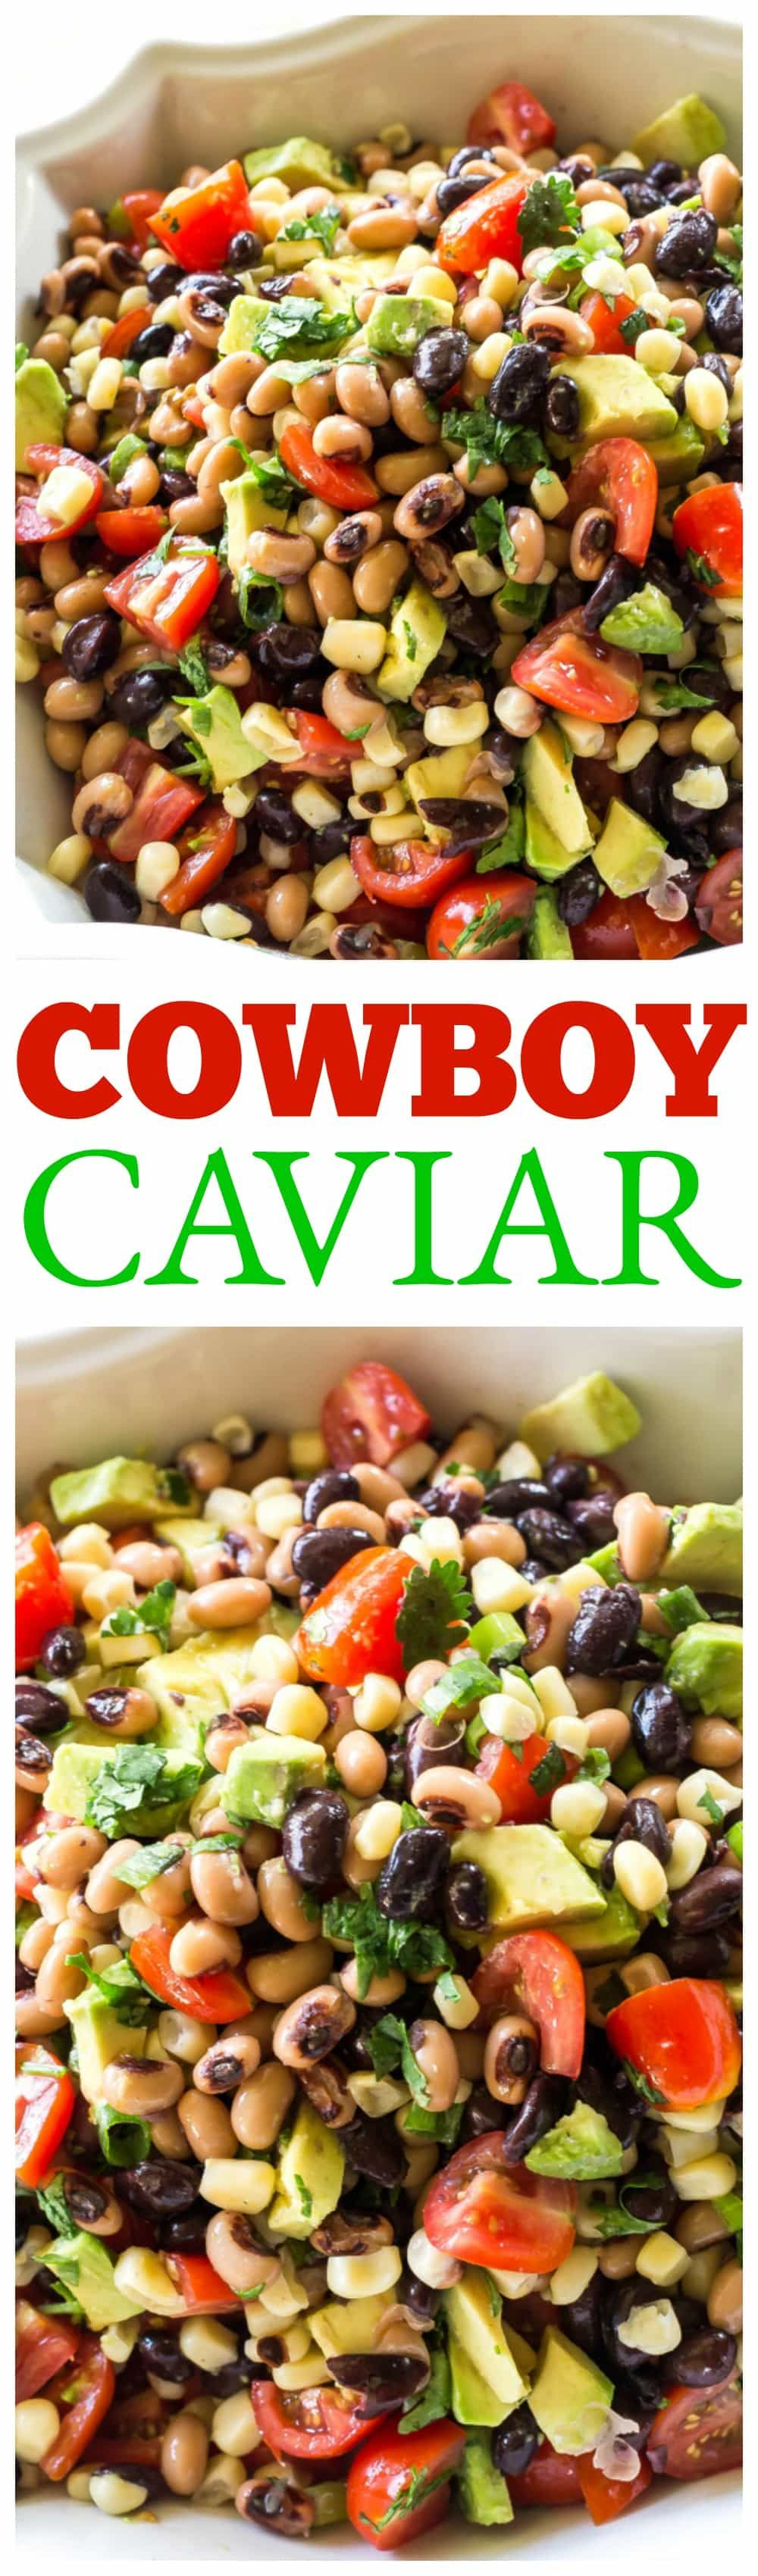 Cowboy Caviar Recipe - The Girl Who Ate Everything